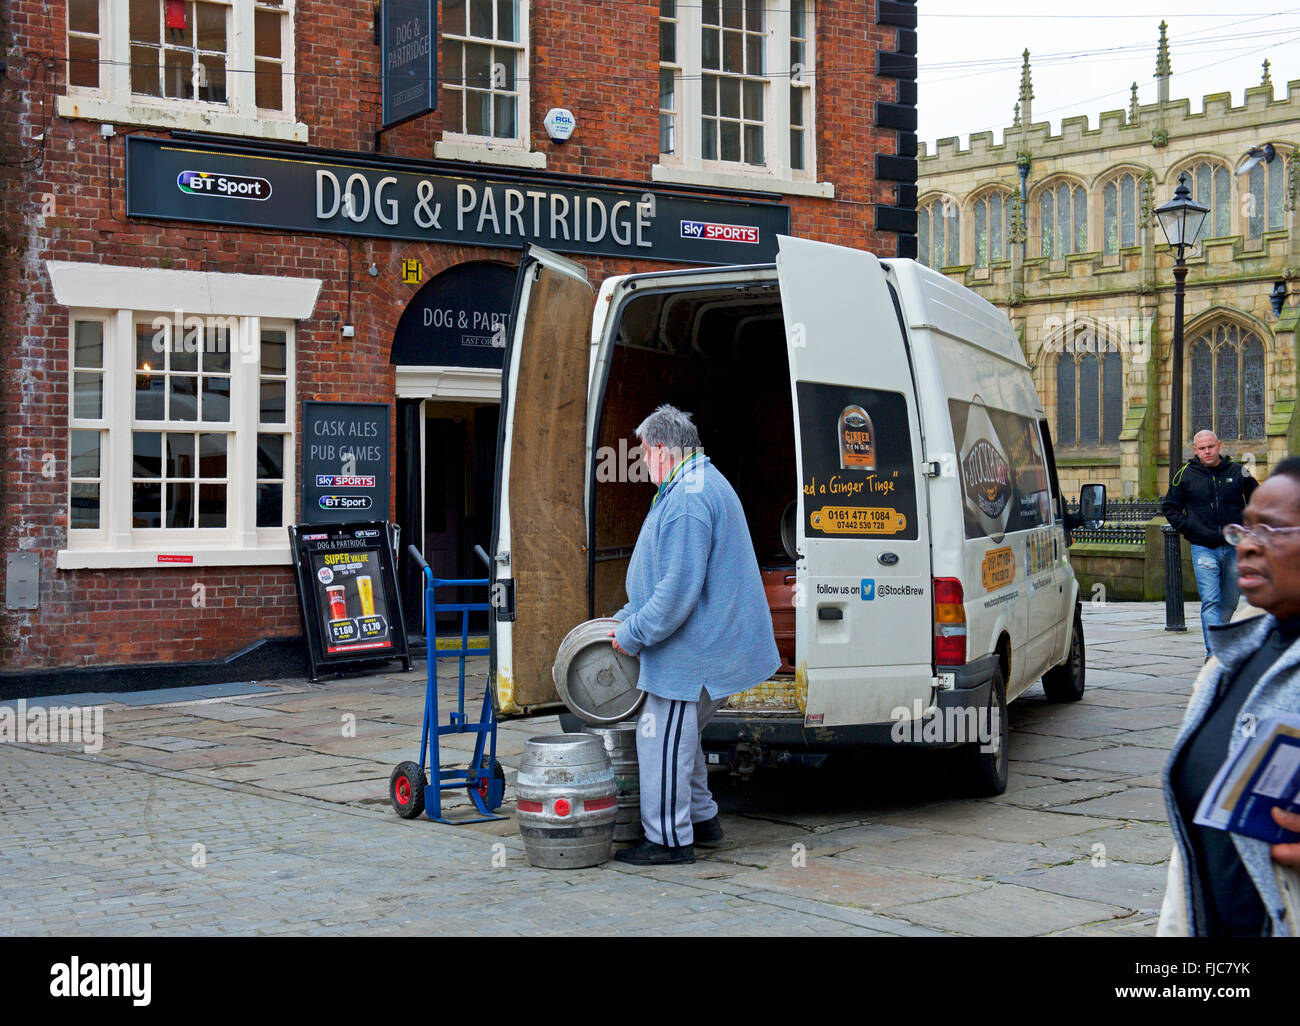 Delivering barrels of beer to the Dog & Partridge pub in Wigan, Lancashire, England UK - Stock Image